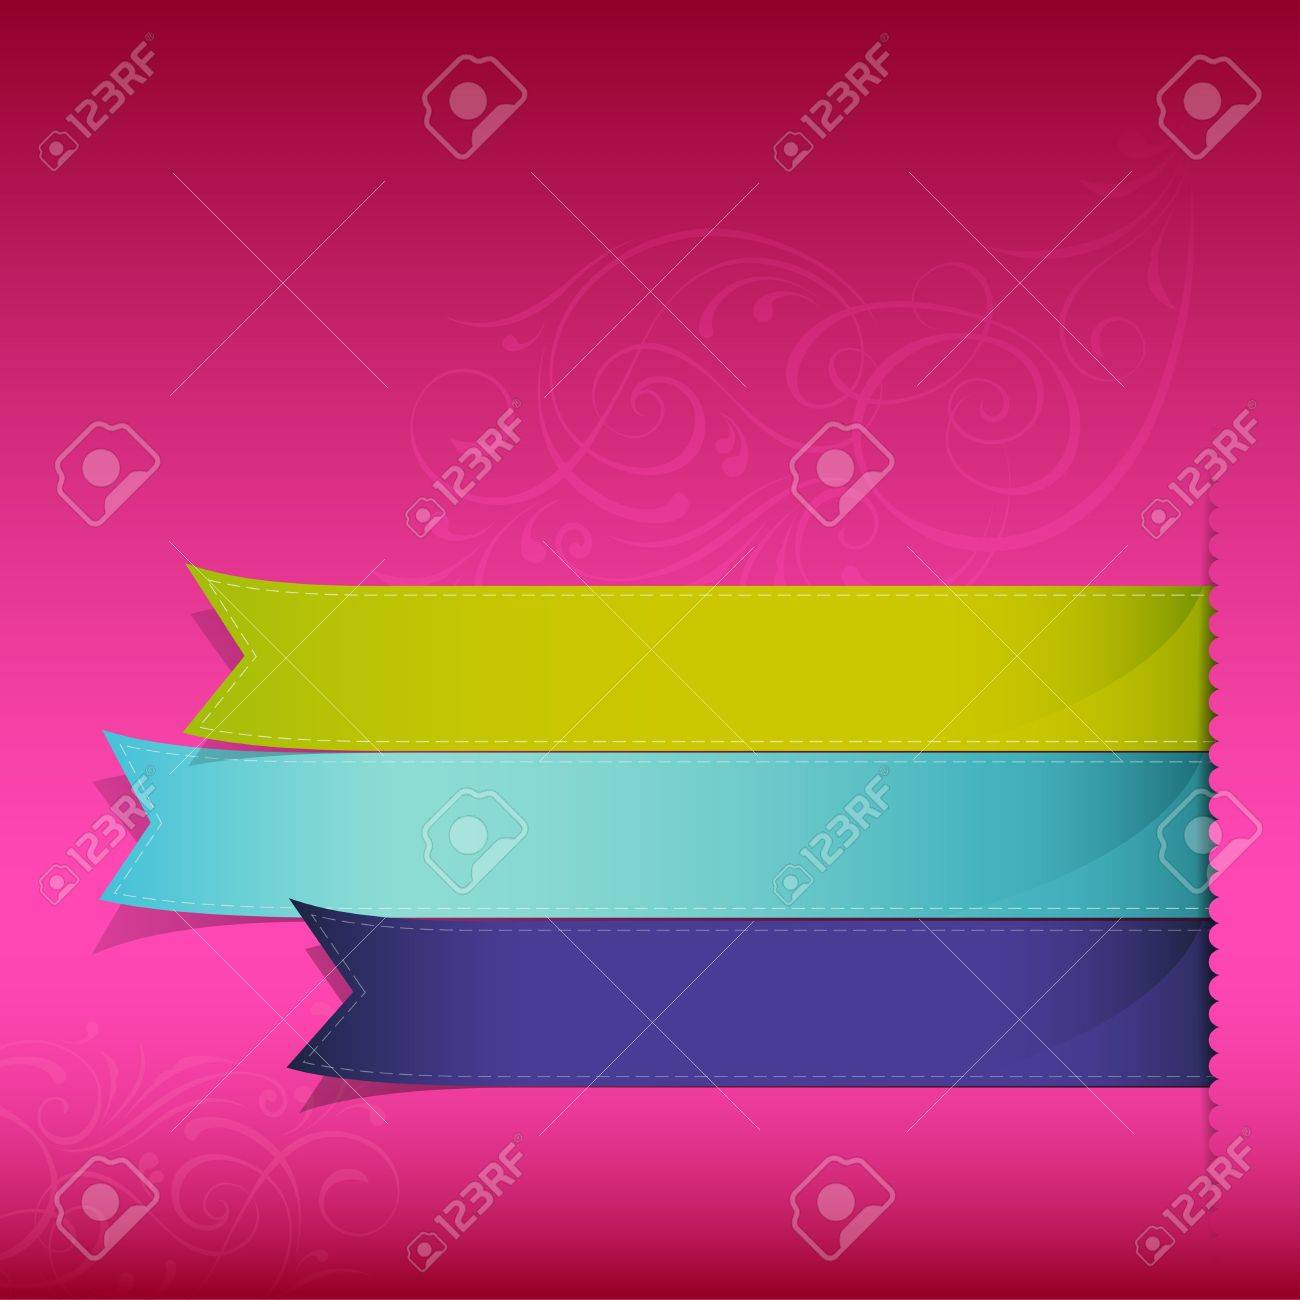 Show colorful ribbon promotional products design, vector illustration Stock Vector - 14615690